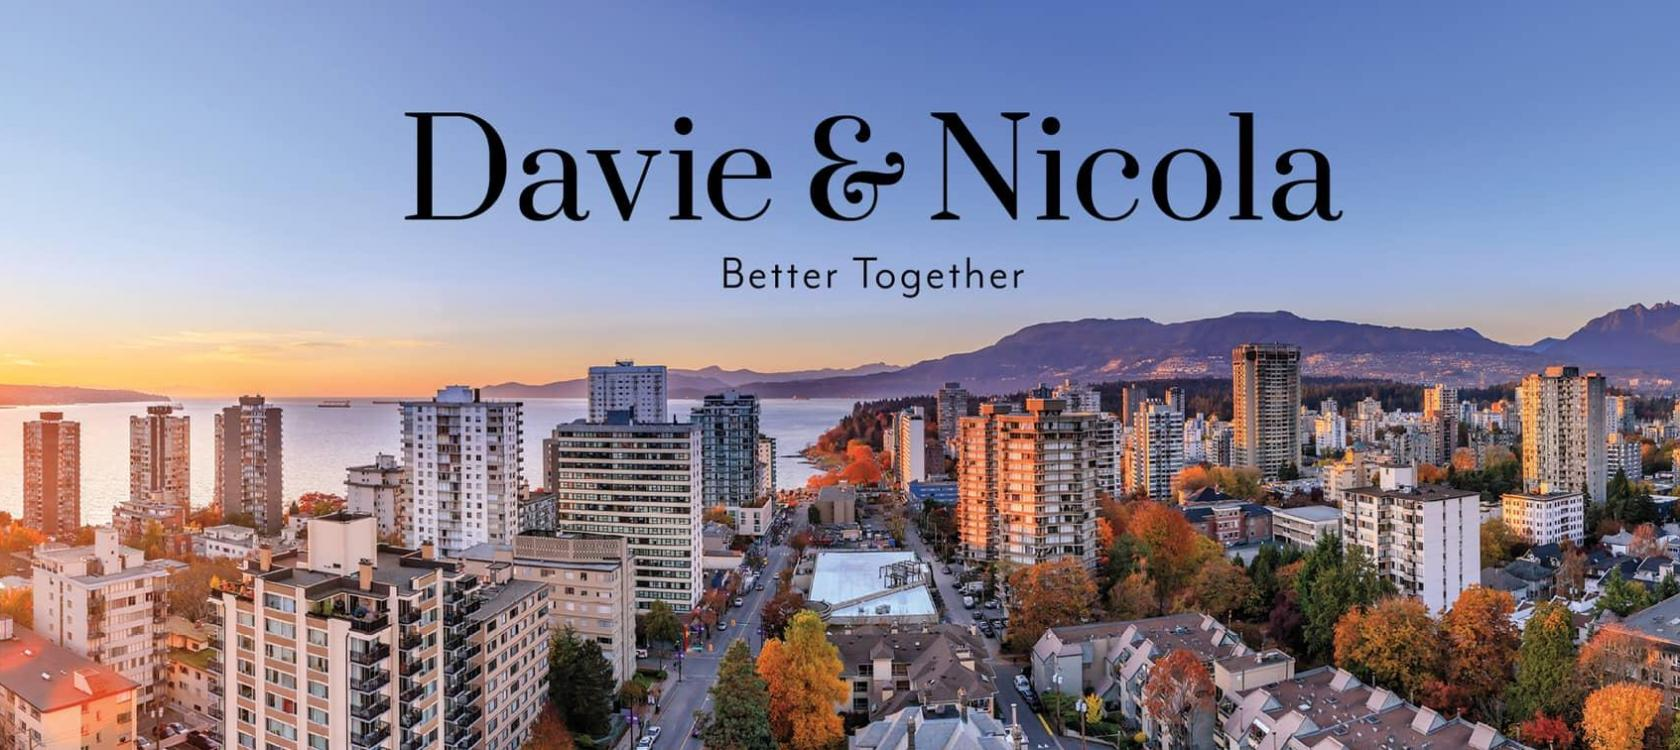 Davie & Nicola Vancouver Downtown new condo development sale